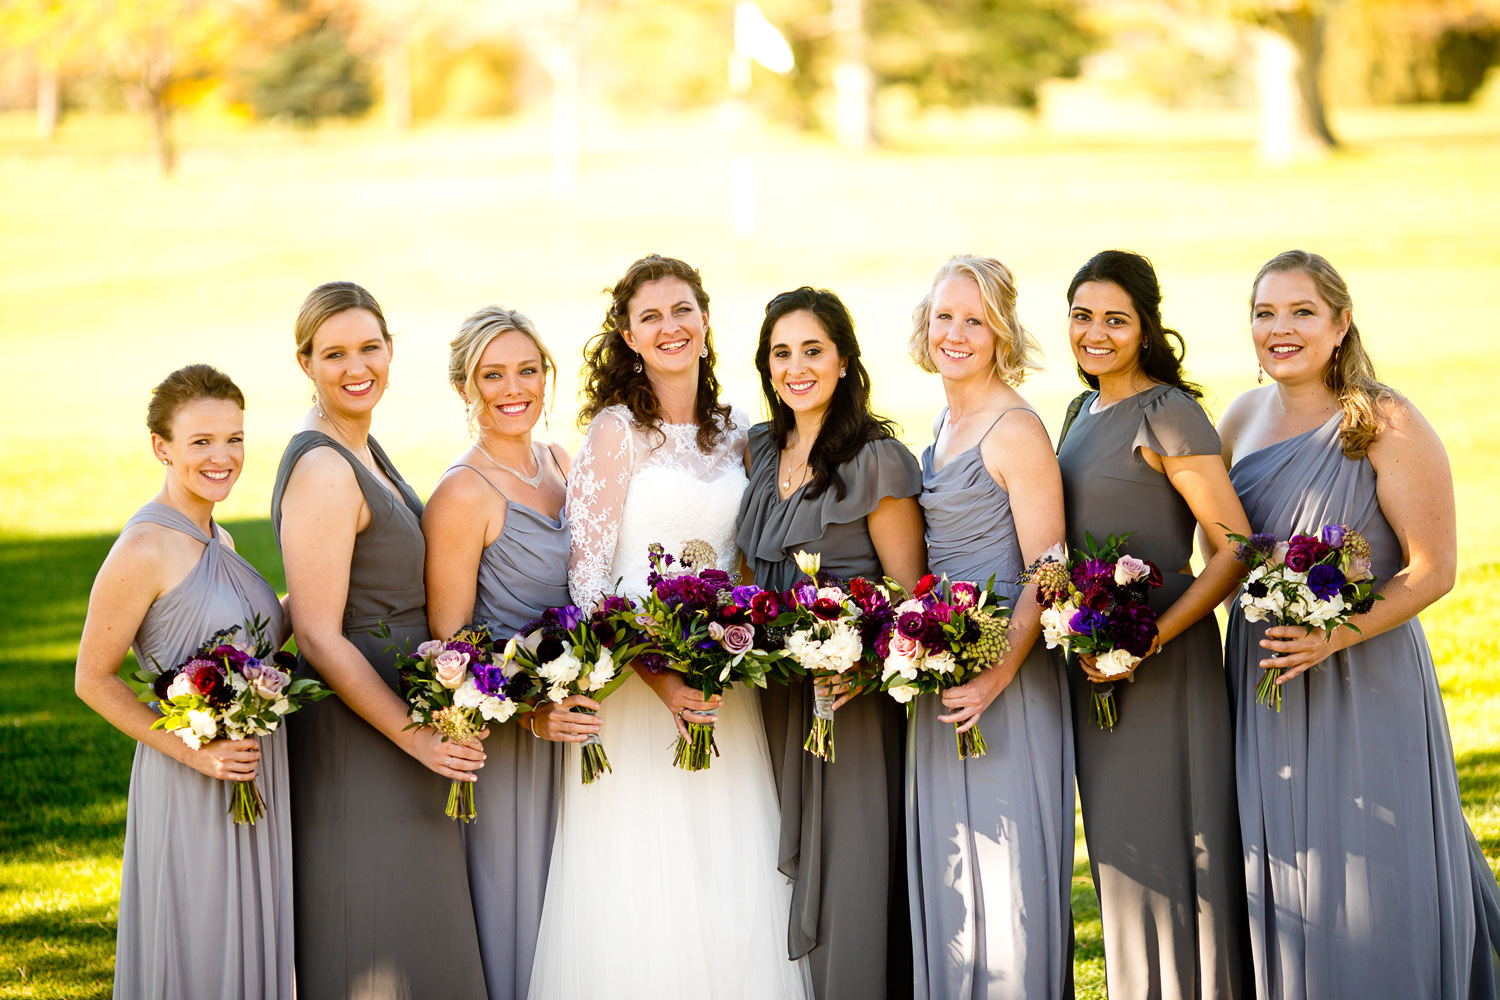 fort-collins-country-club-wedding-photographer-tomKphoto033.jpg